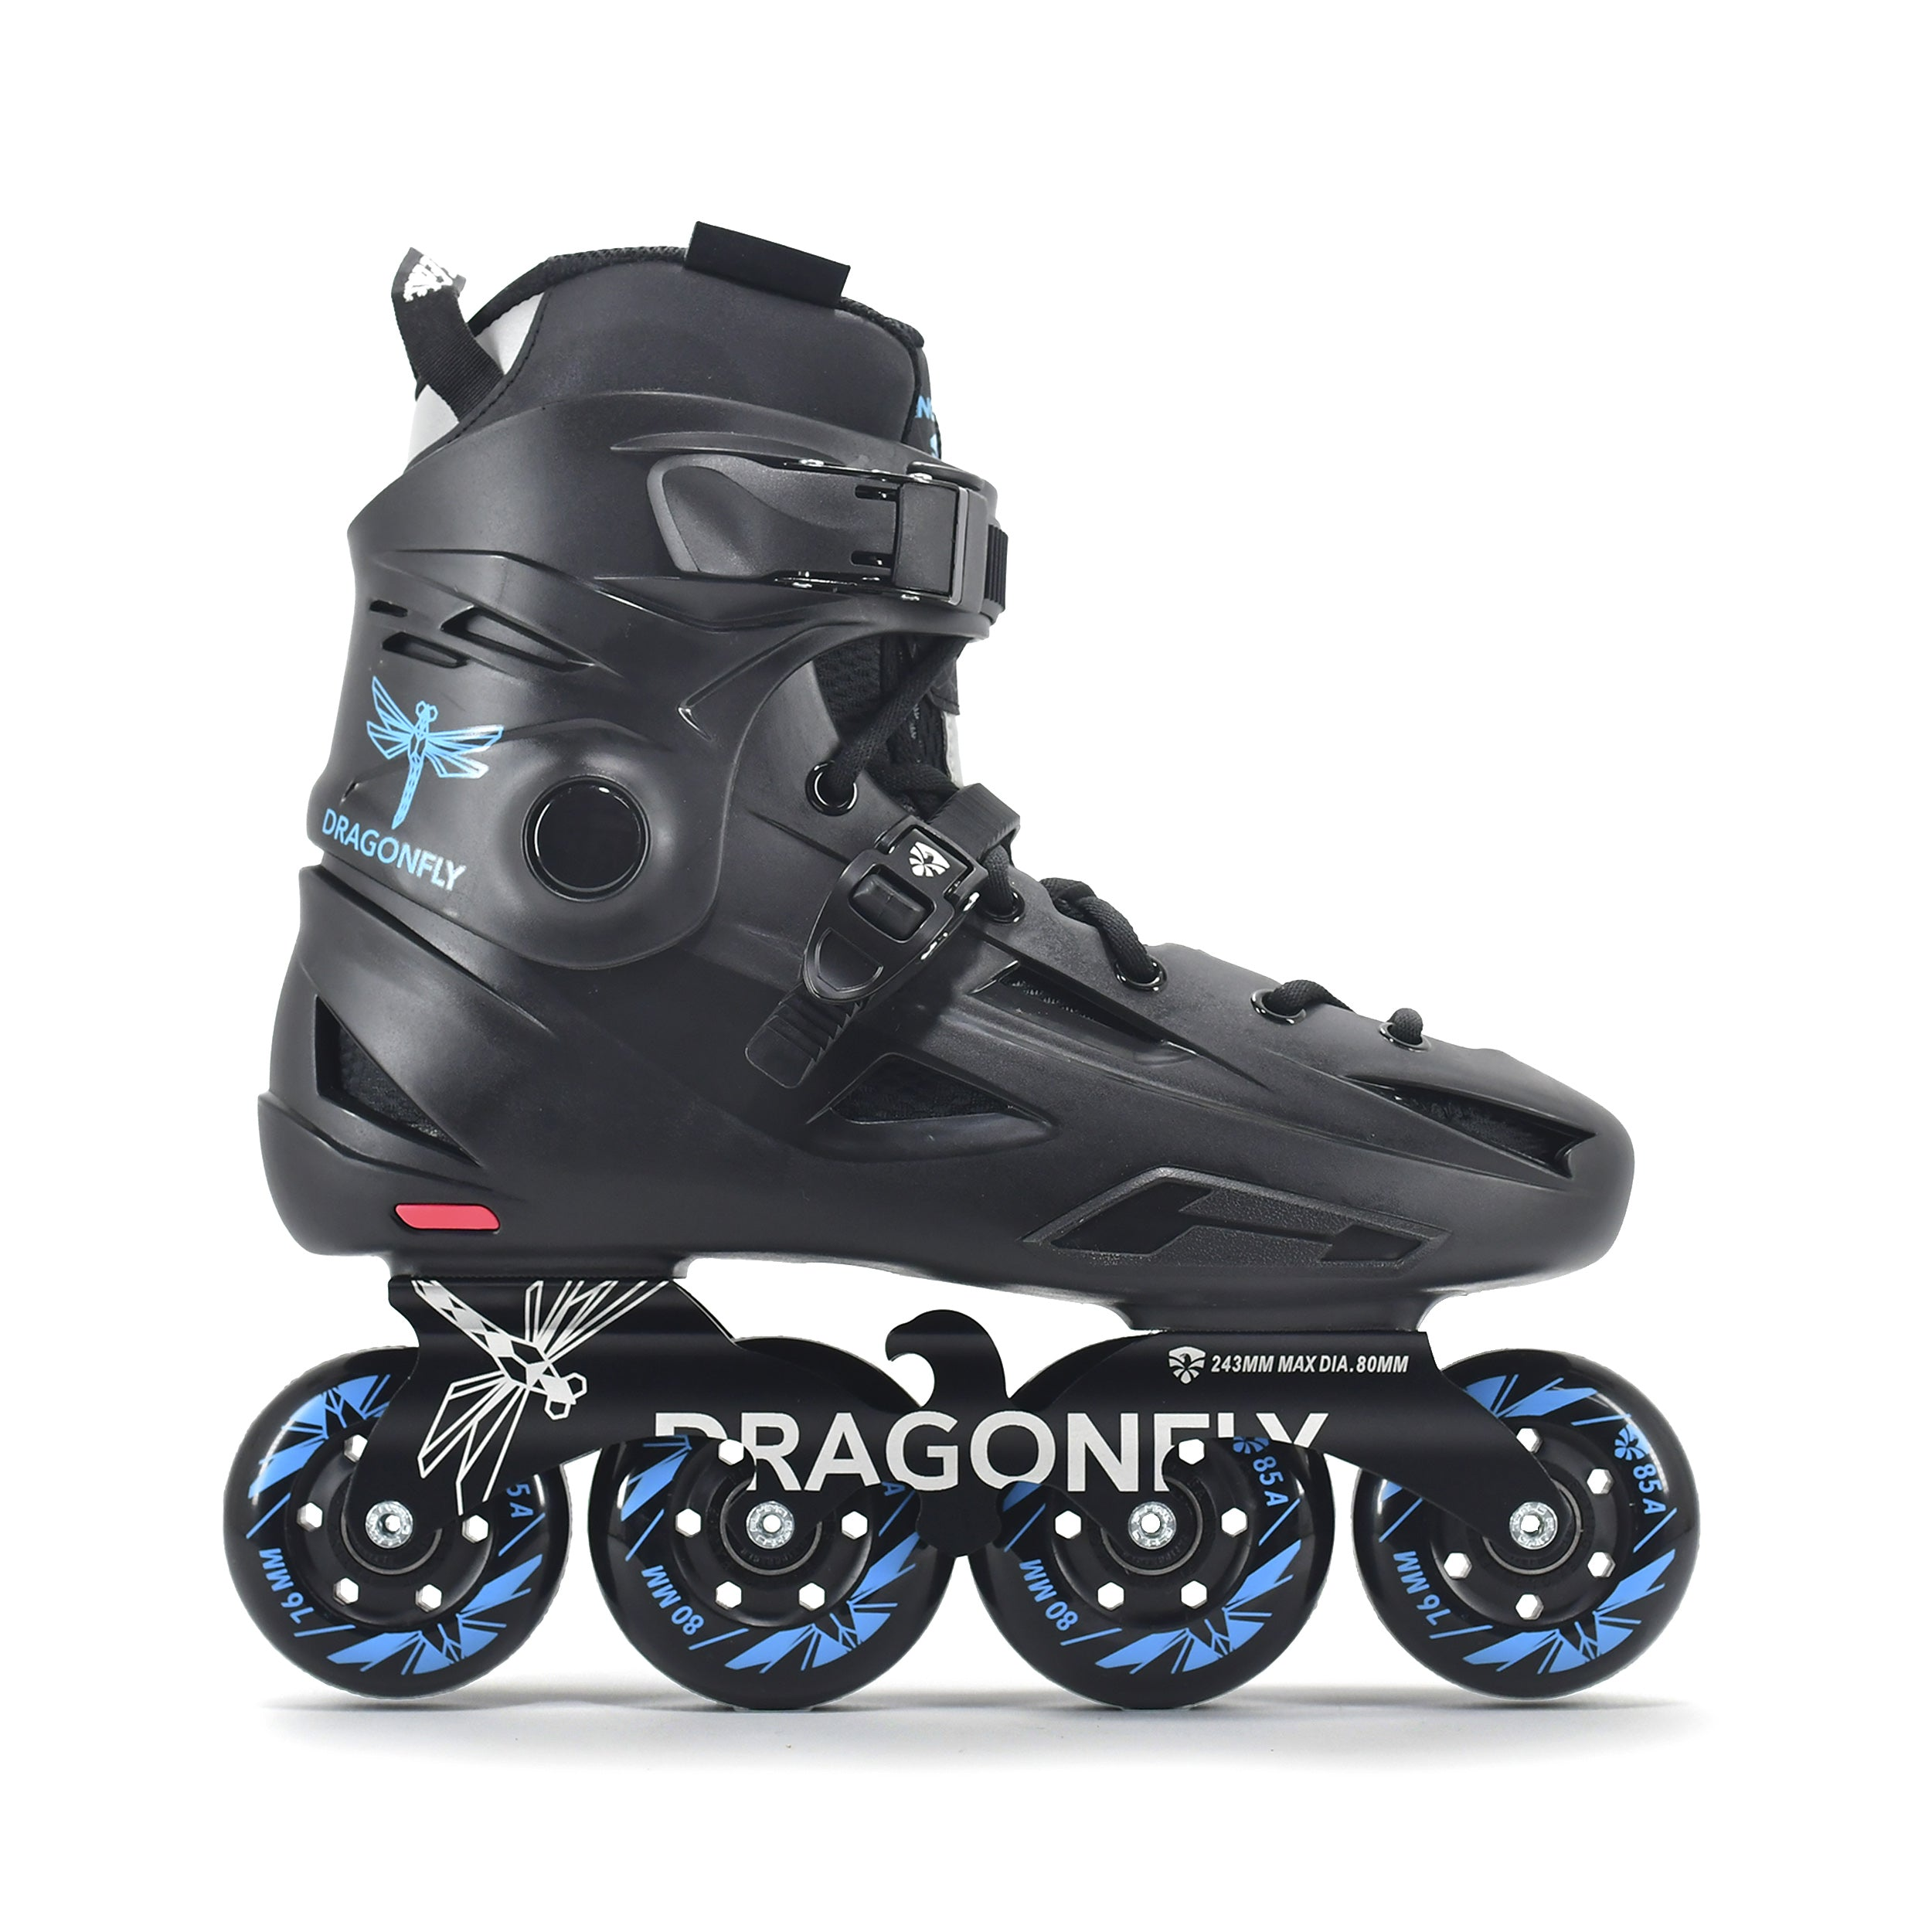 Patins Urbano Flying Eagle Dragon Fly F3 Preto com Azul Rodas 72/76/80mm 85a Abec-7